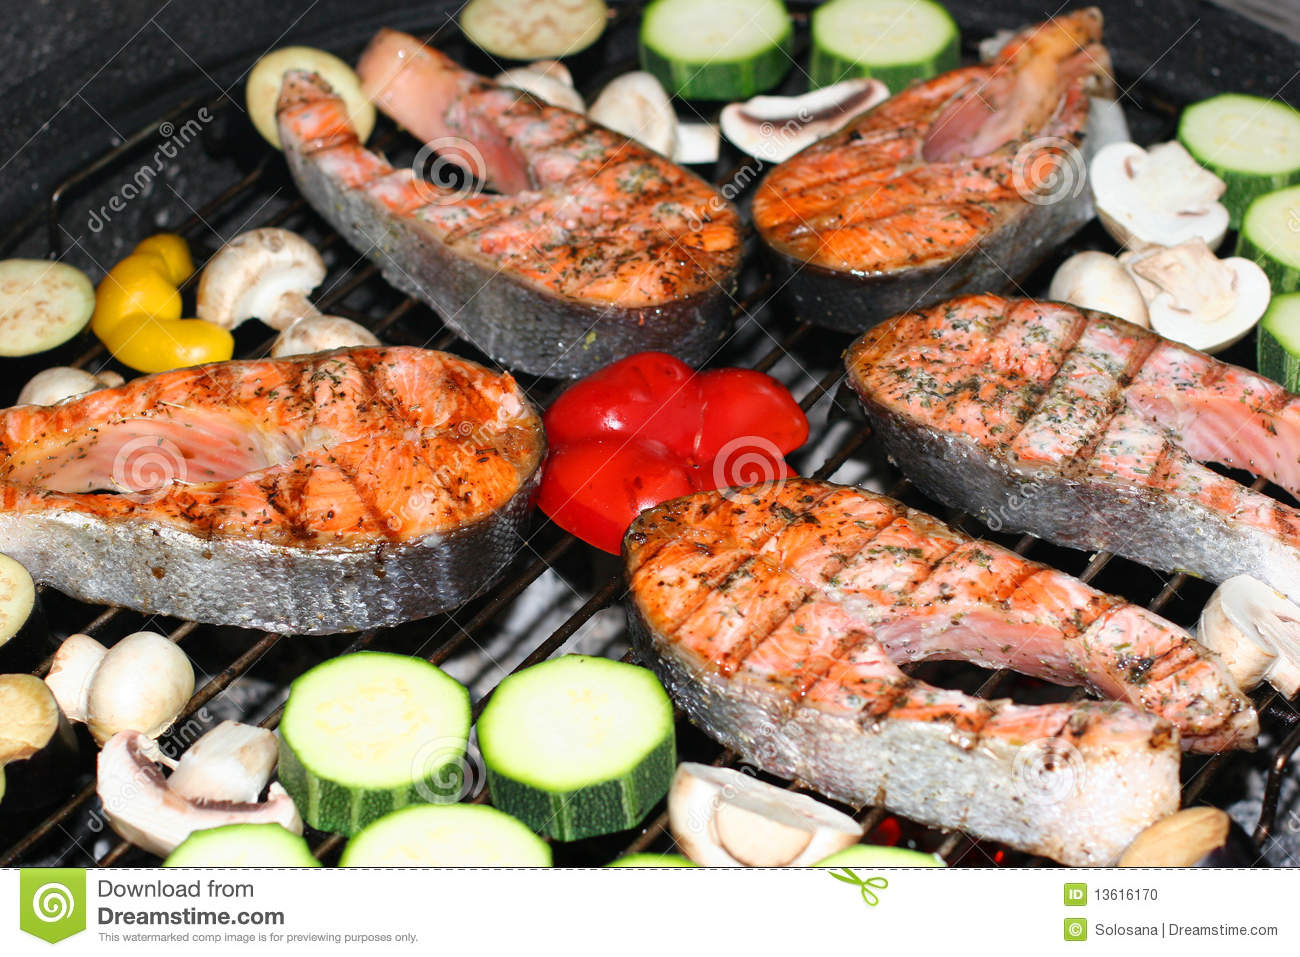 Fresh fish and vegetables prepared on barbecue.